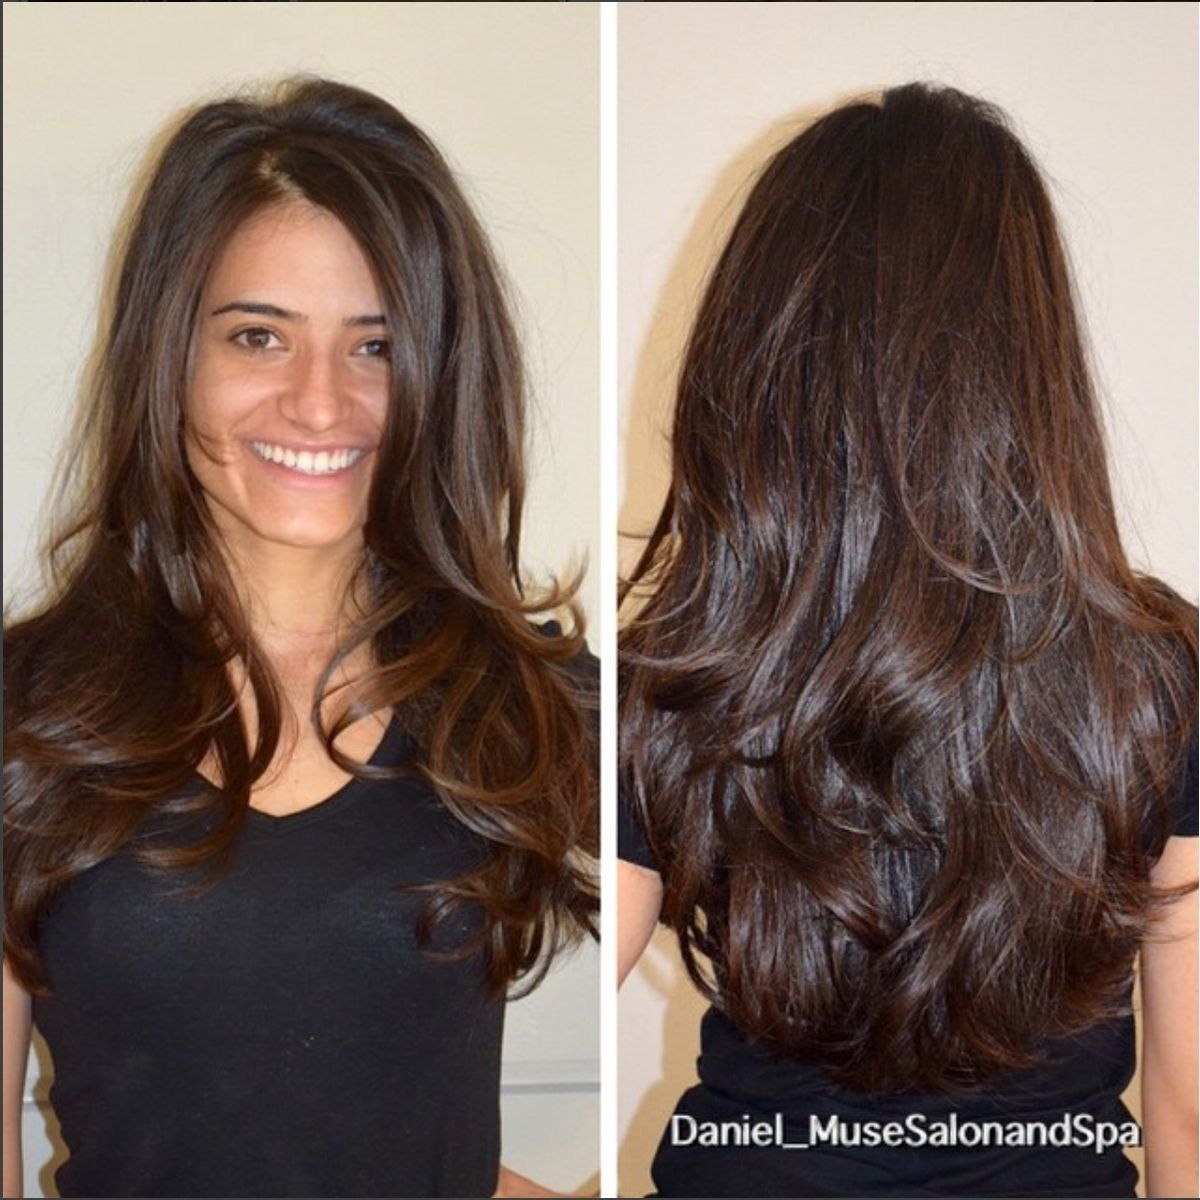 Pin By Susan Waalkes On Hair Styling And Colouring Haircut For Thick Hair Thick Hair Styles Long Thick Hair